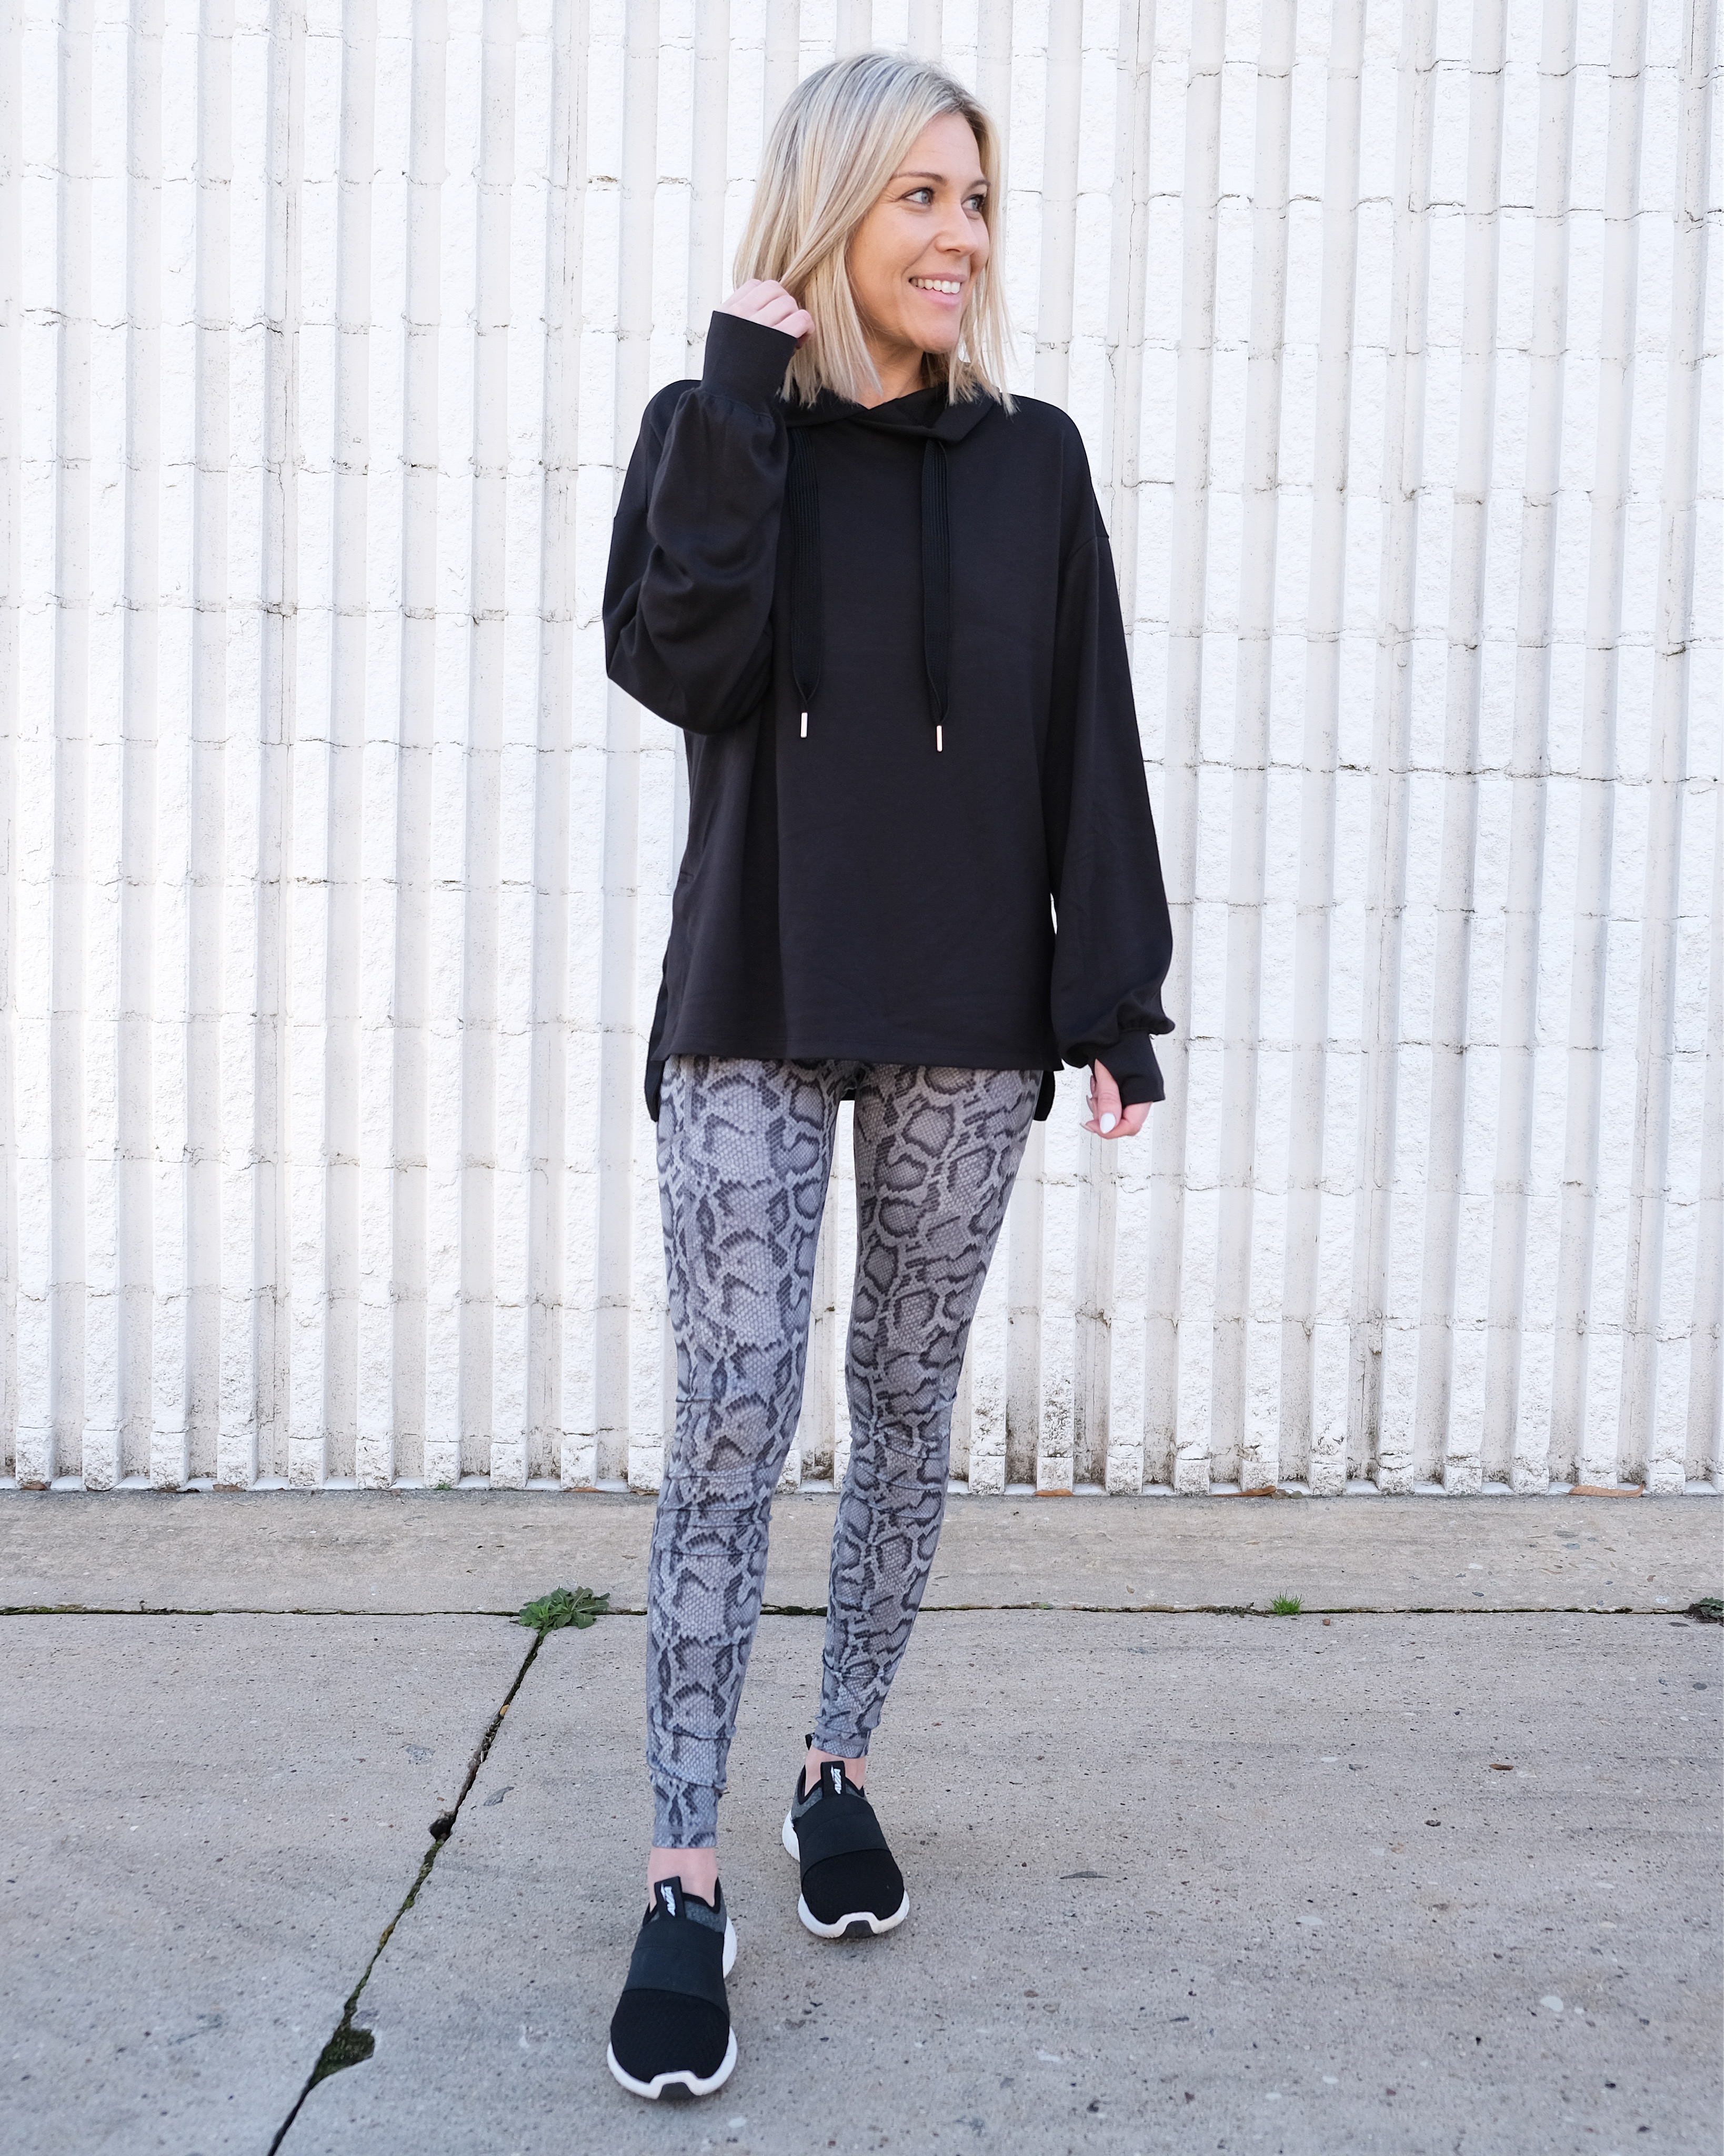 woman wearing black tunic with snake print leggings and sneakers